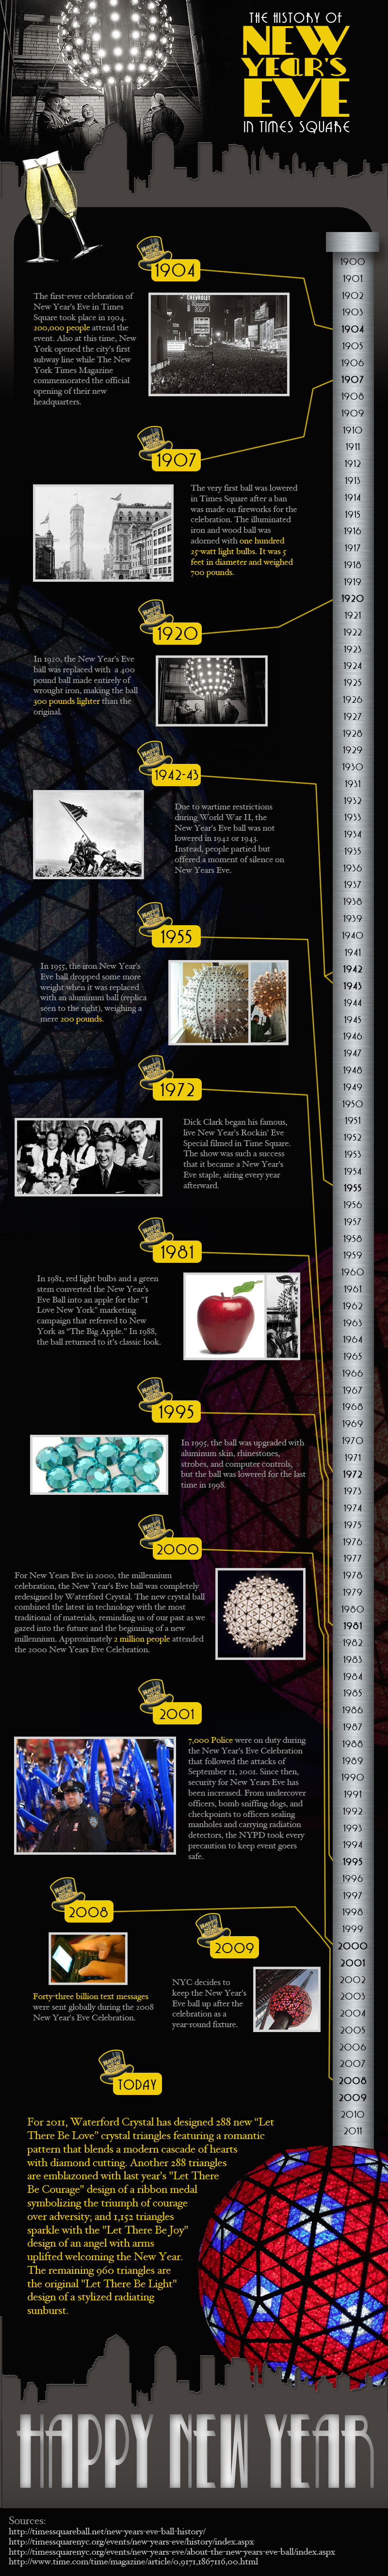 History of New Year's Eve in Times Square